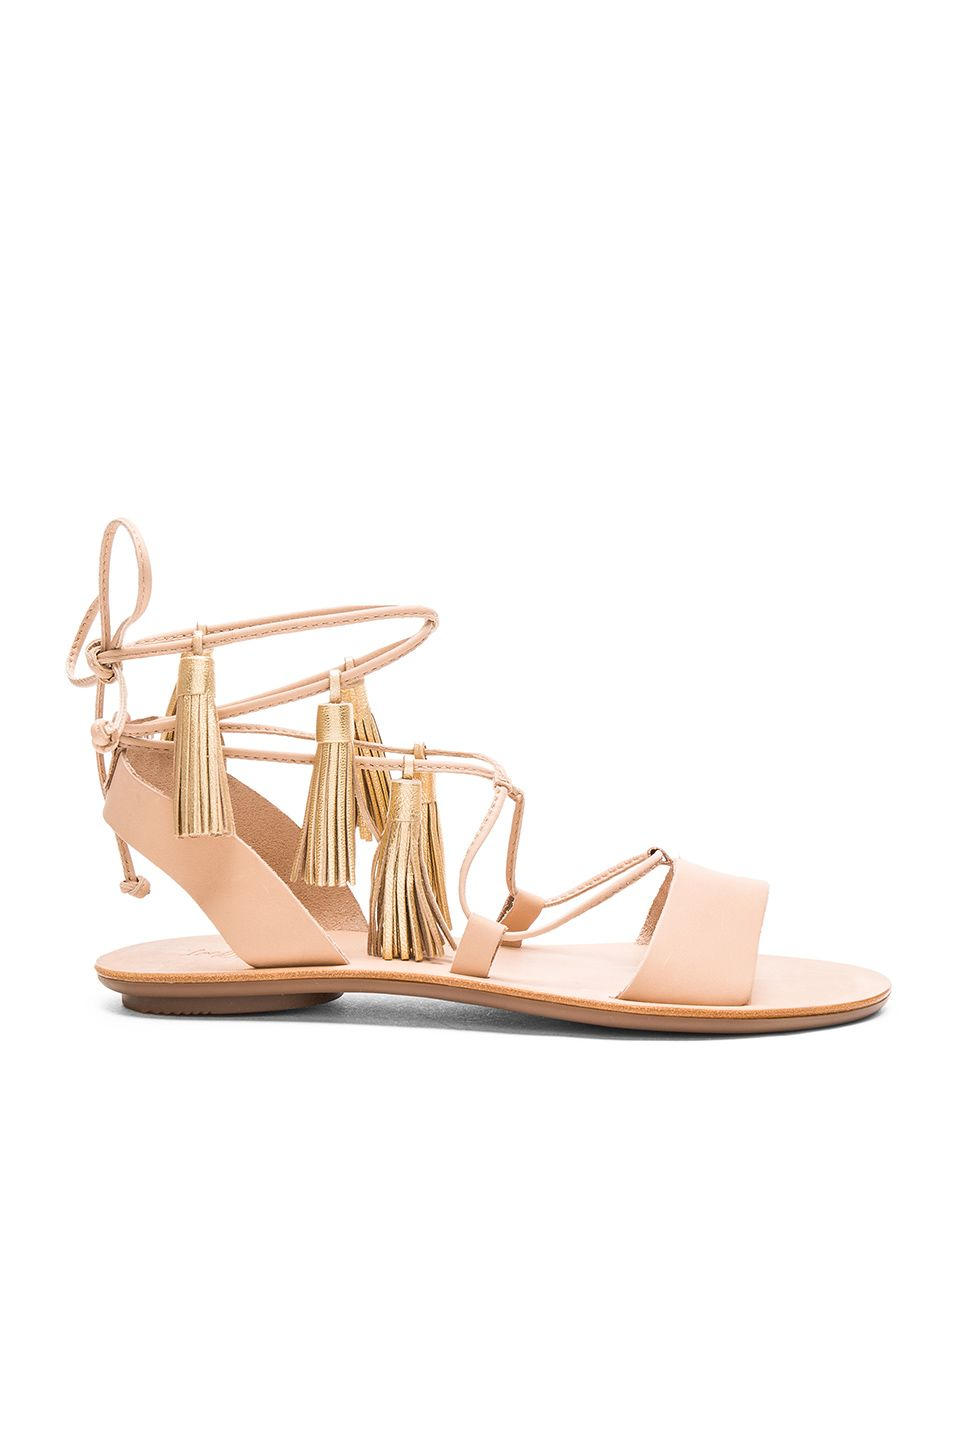 See this and similar Loeffler Randall sandals - Saffron Sandal Leather  upper with rubber sole. Lace-up front with wrap tie closure.